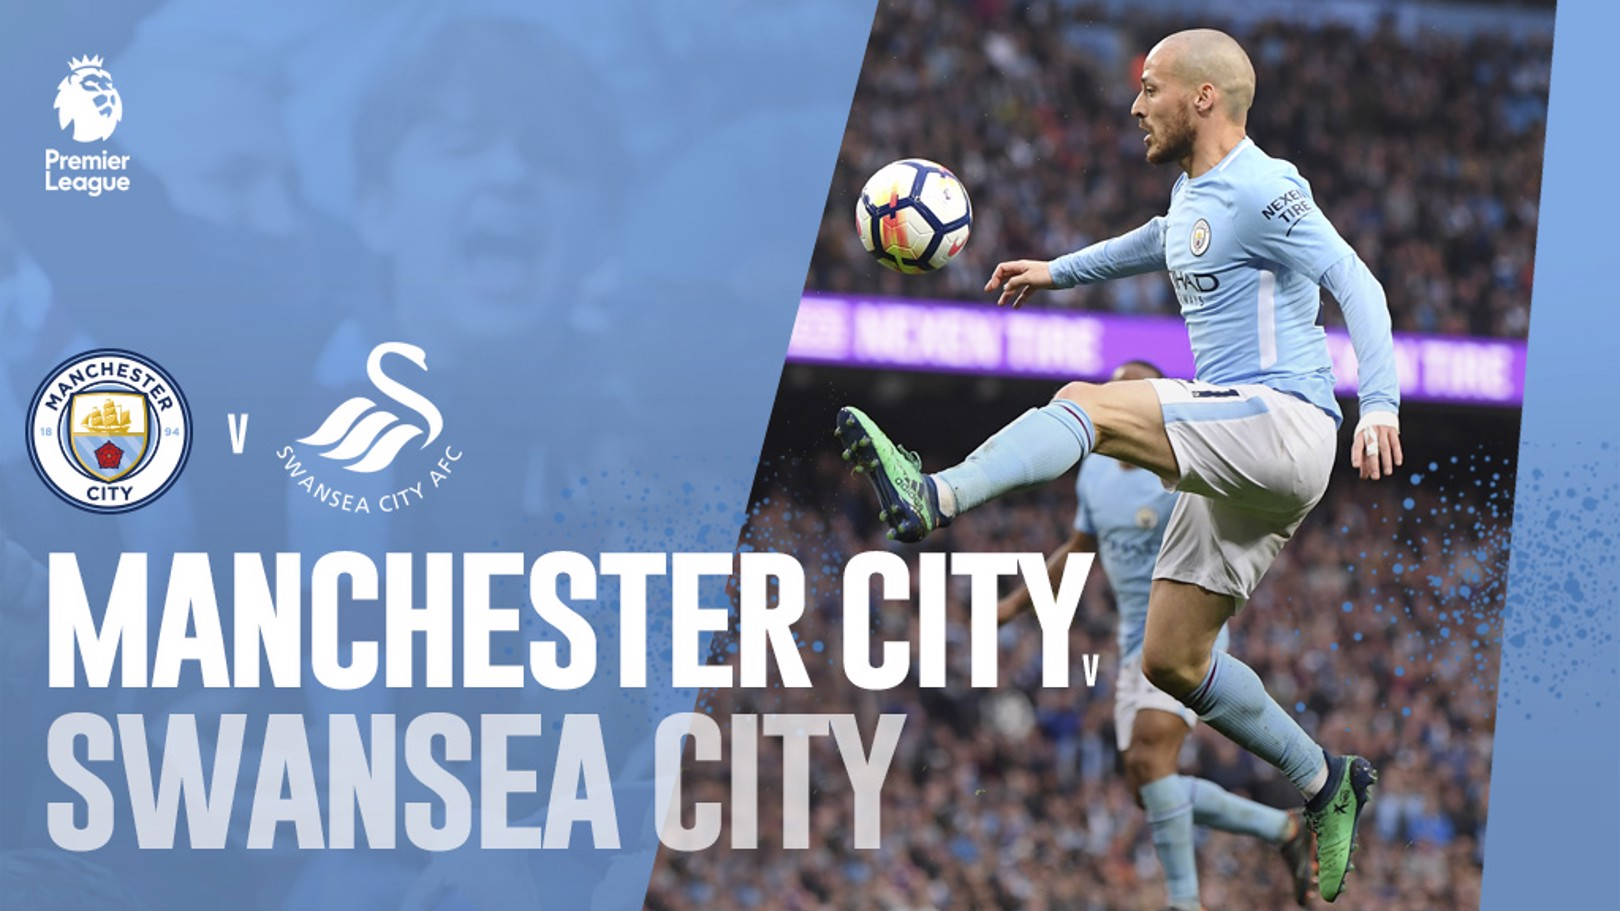 CITY-SWANSEA. 35ª jornada de la Premier League.